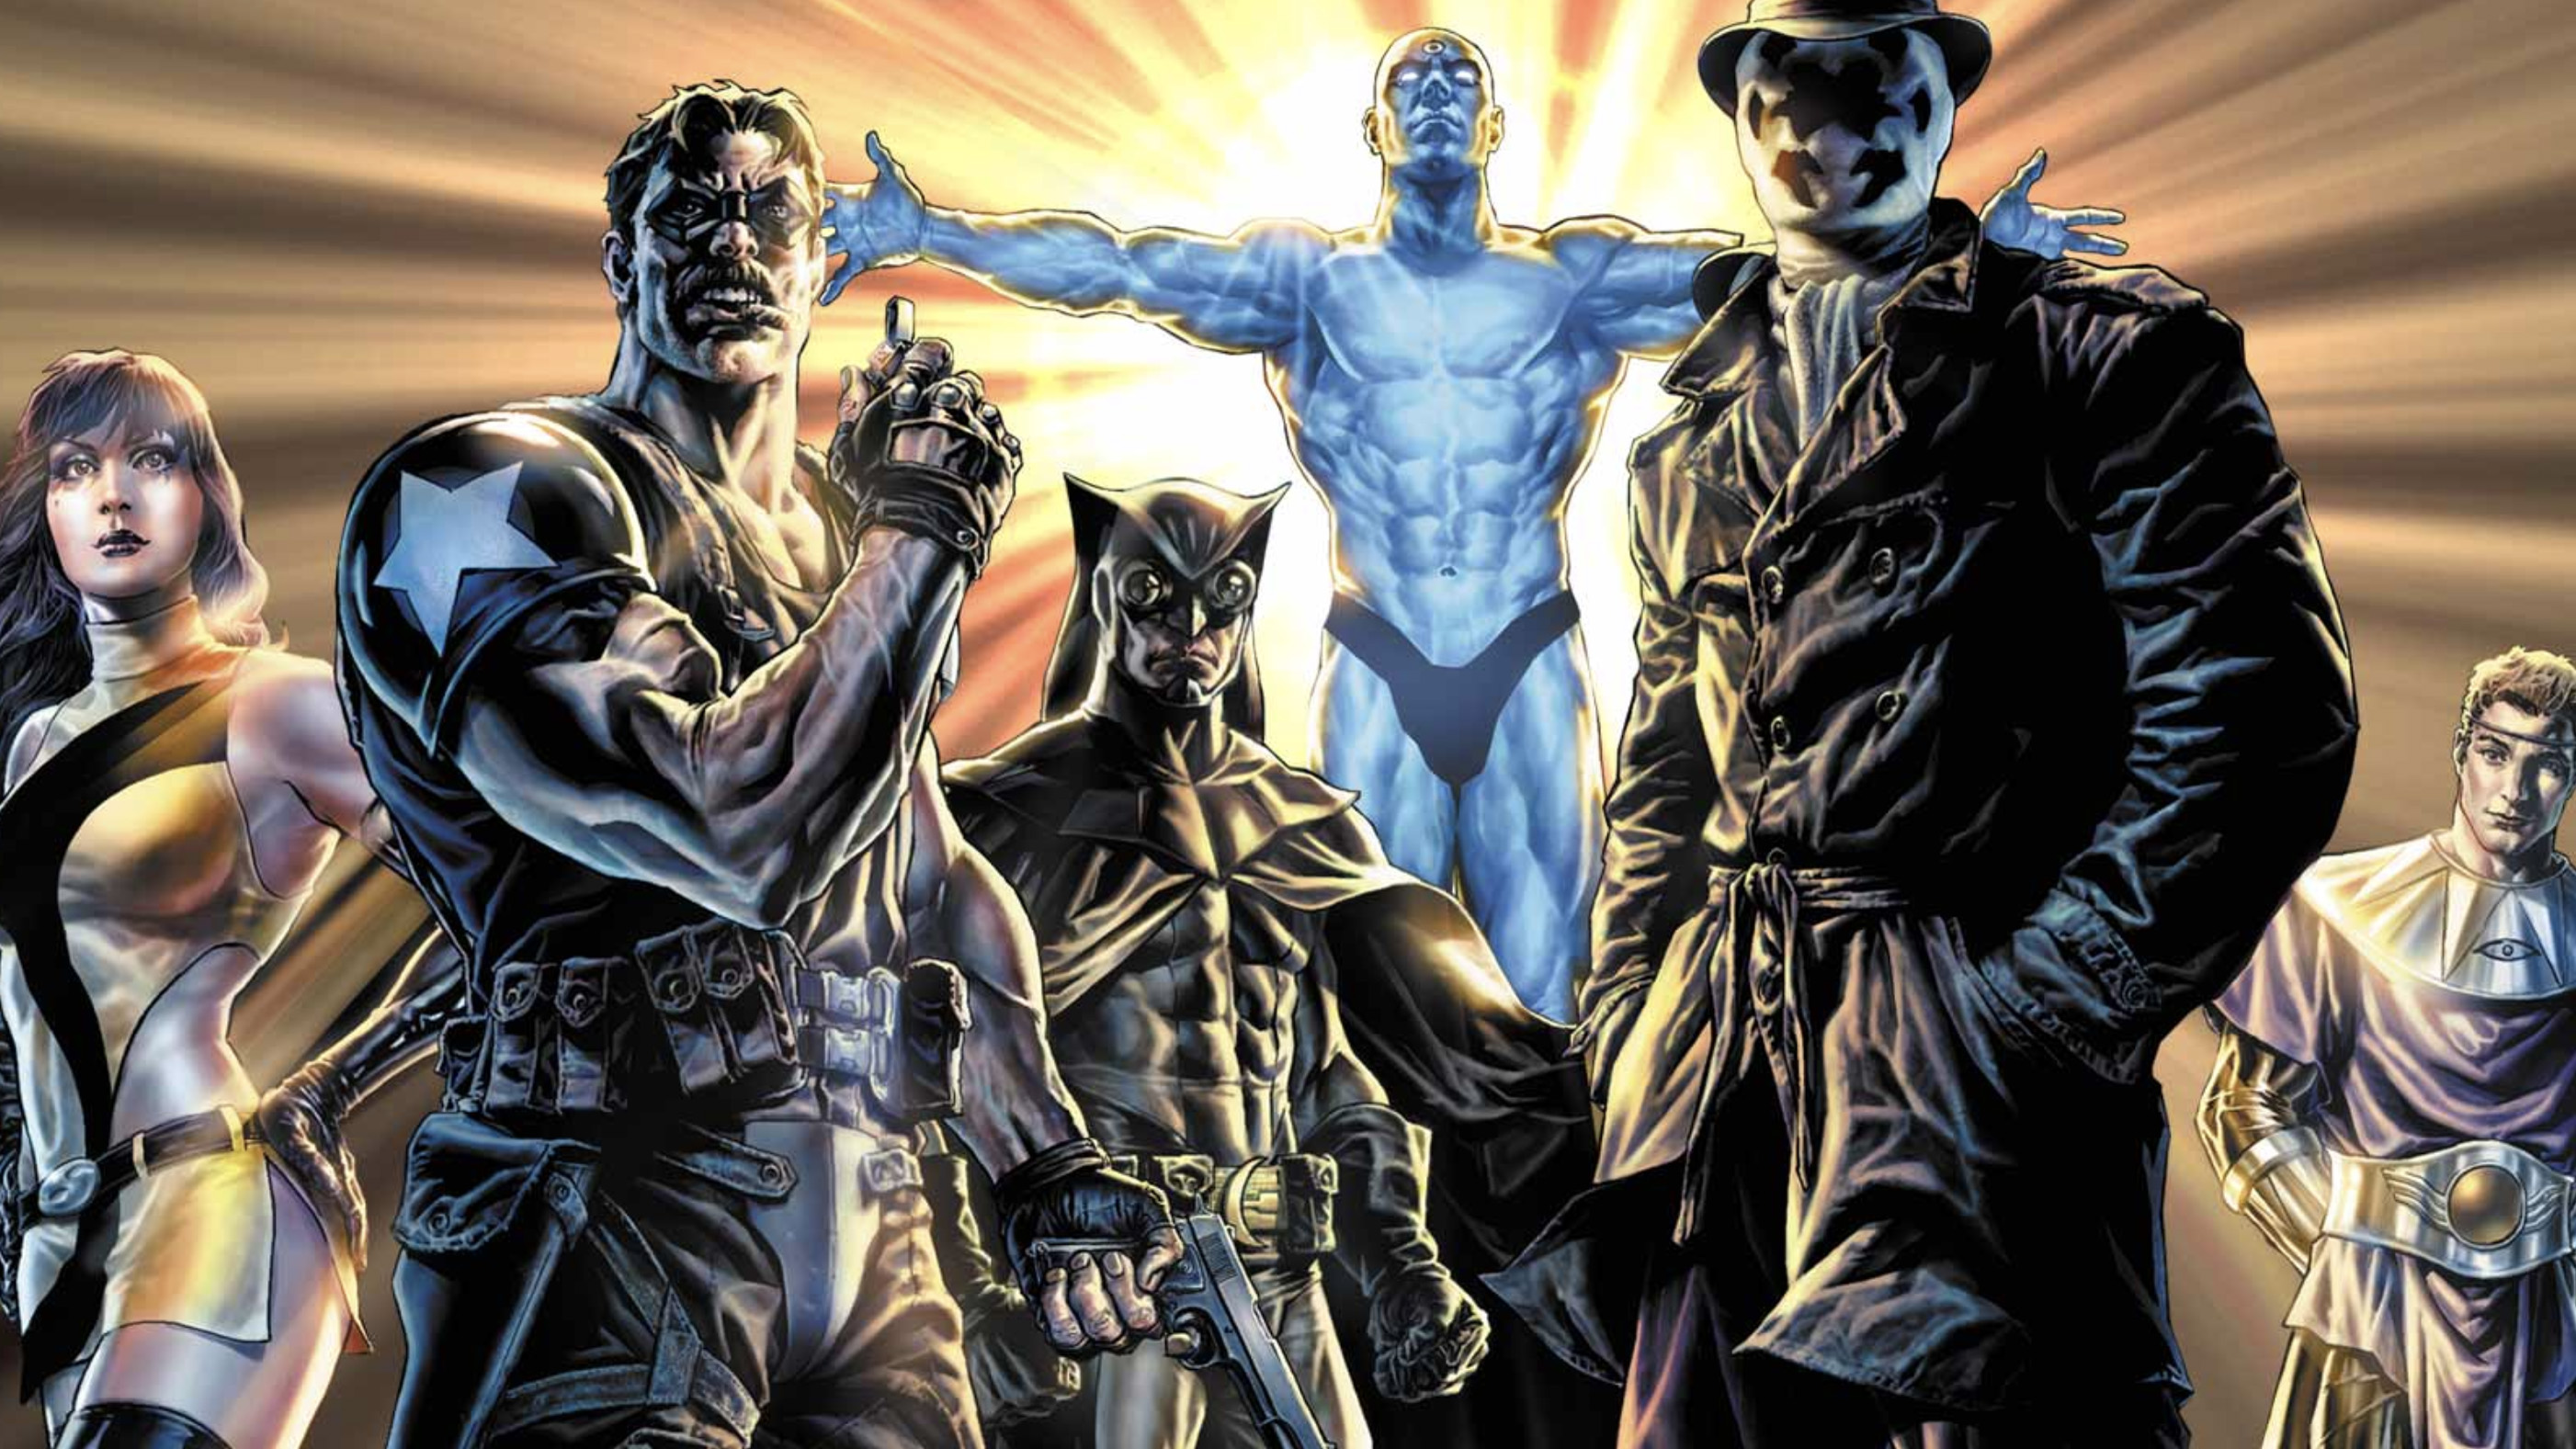 Watchmen HBO beginners guide: what to know before you watch